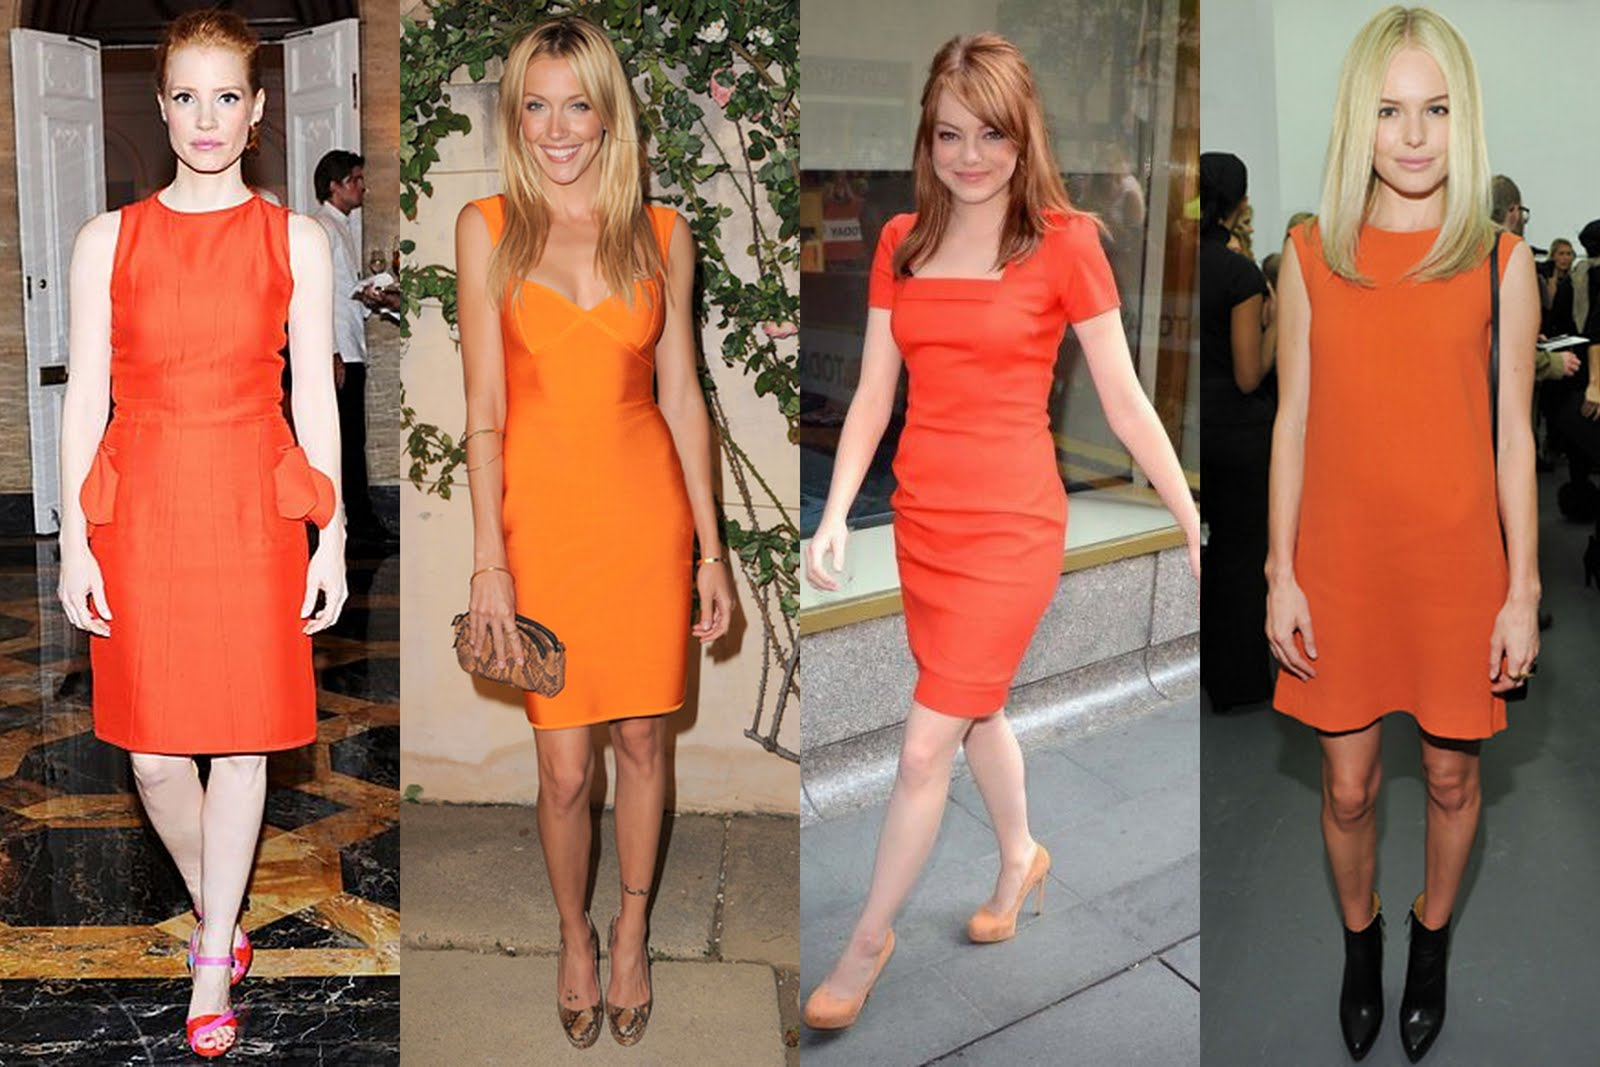 Apricot dress what color shoes to wear with orange dress